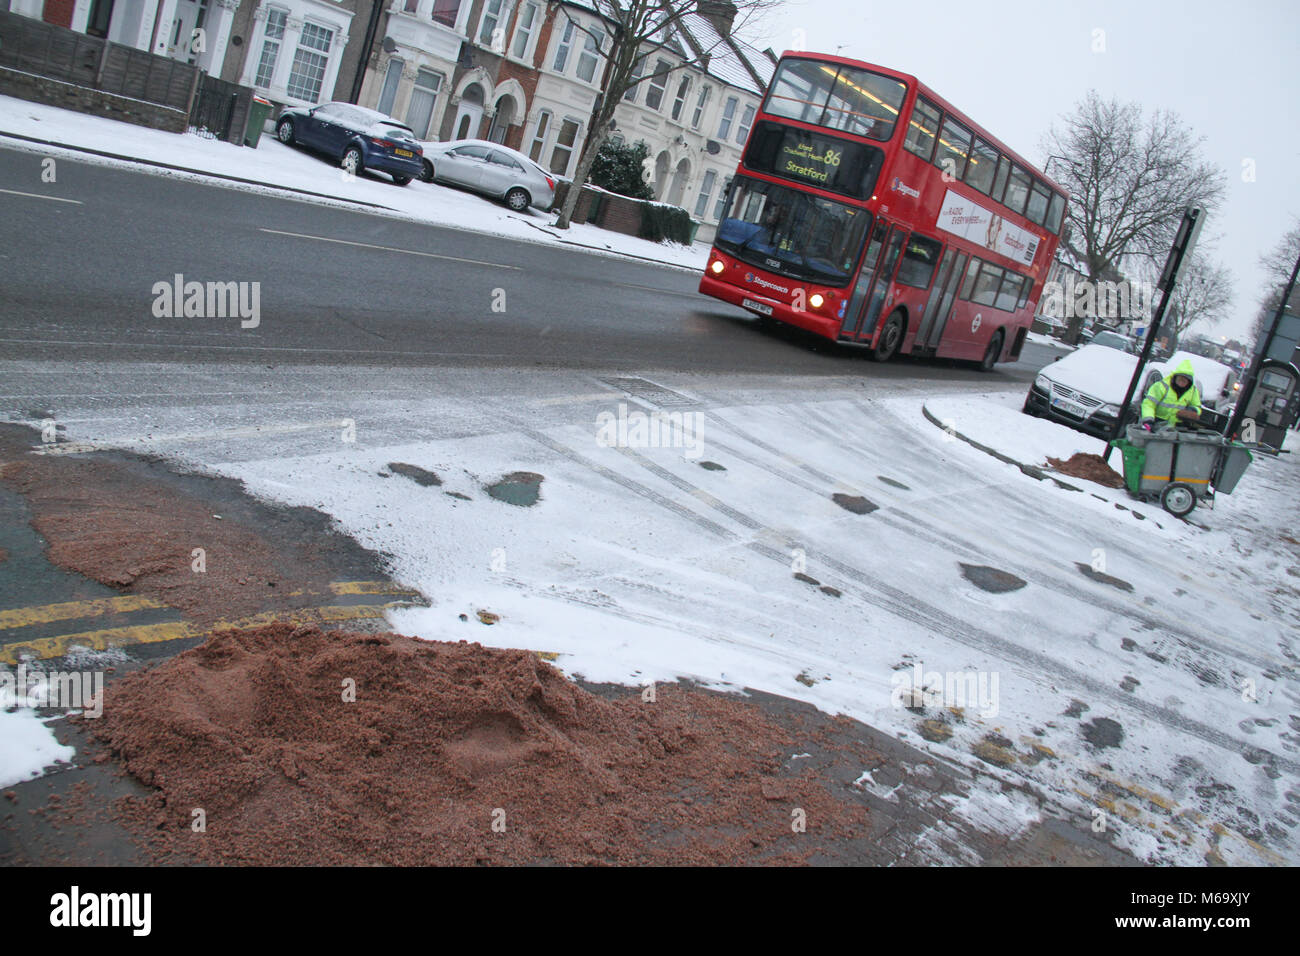 London, UK. 1st Mar, 2018. A council worker prepares grit for the footpaths along Romford Road after heavy overnight - Stock Image